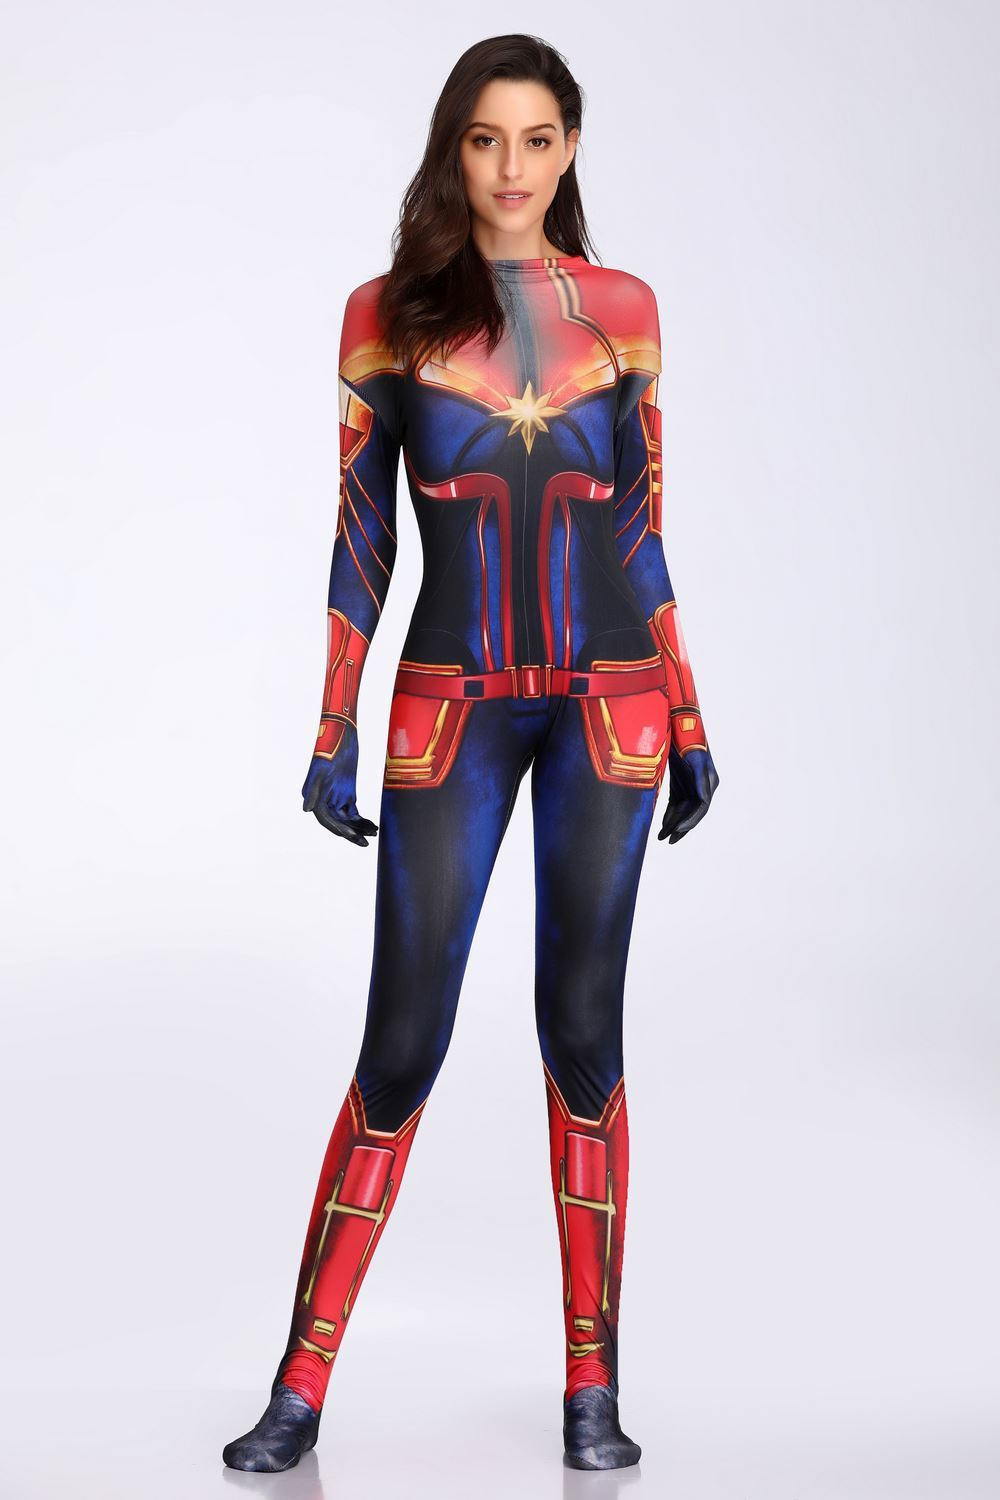 Captain Marvel Cosplay Adult Halloween Costume On Sale For Us 10 59 Www Lover Pretty Com Ezt a játékot tartalmazó csomagok. captain marvel cosplay adult halloween